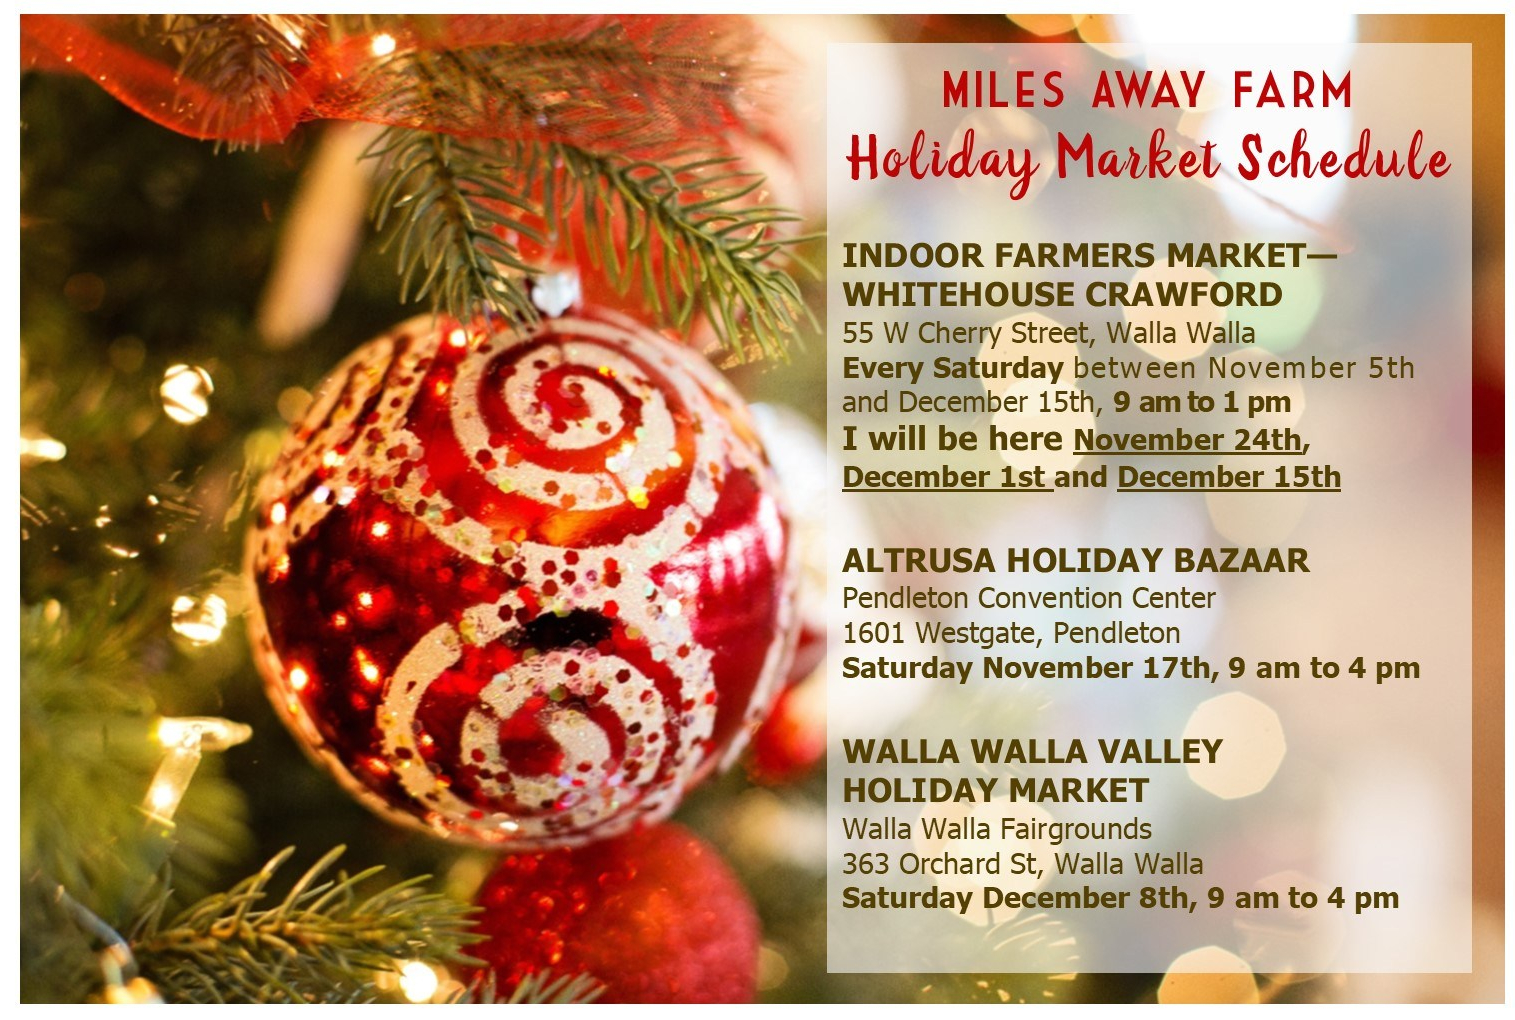 Miles Away Farm Holiday Show schedule